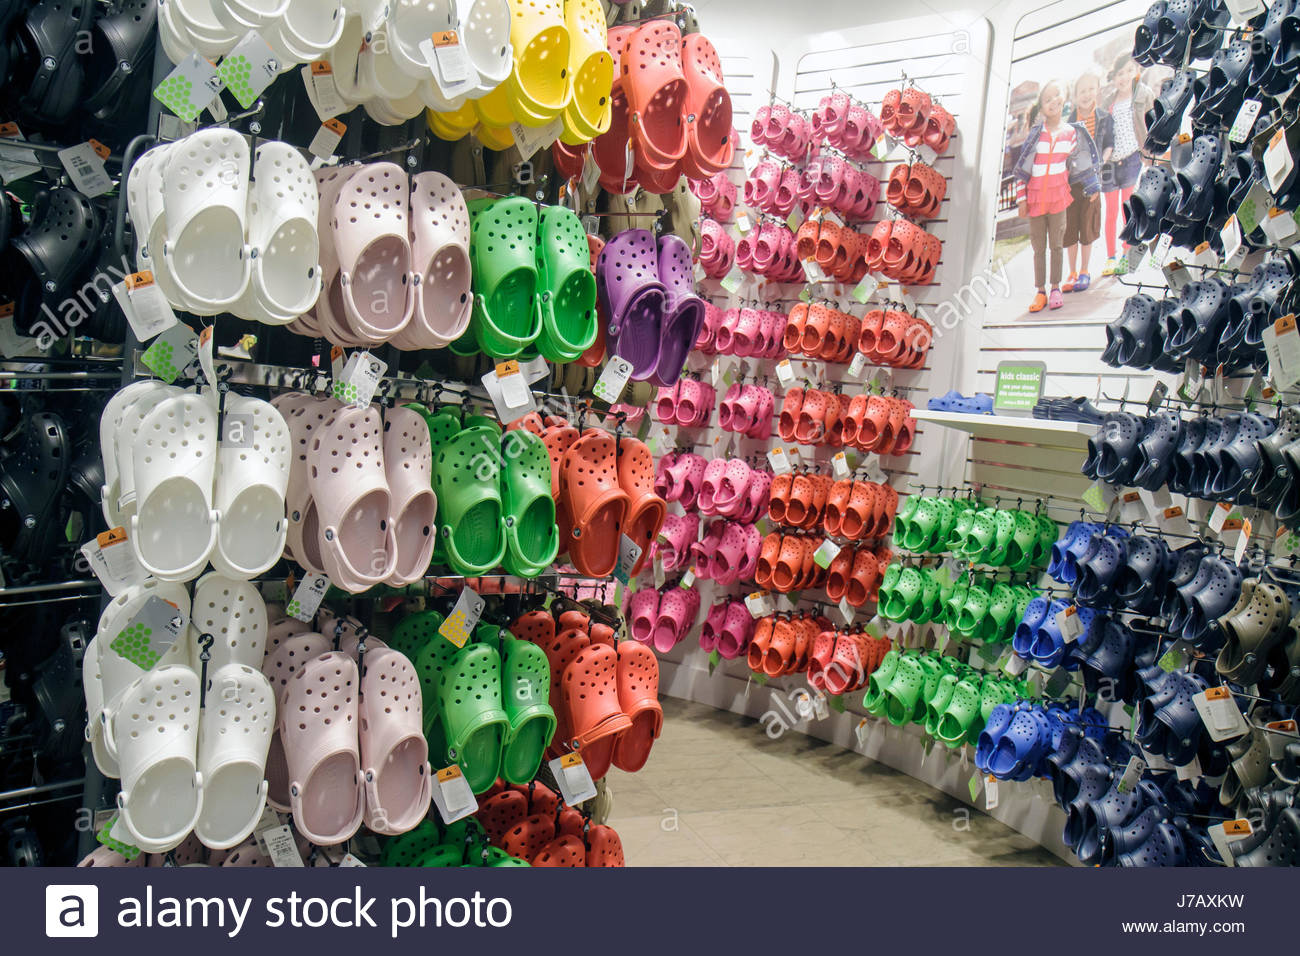 67965ea8b1c1 Miami Florida Aventura Mall shopping retail display for sale Crocs shoes  fashion store